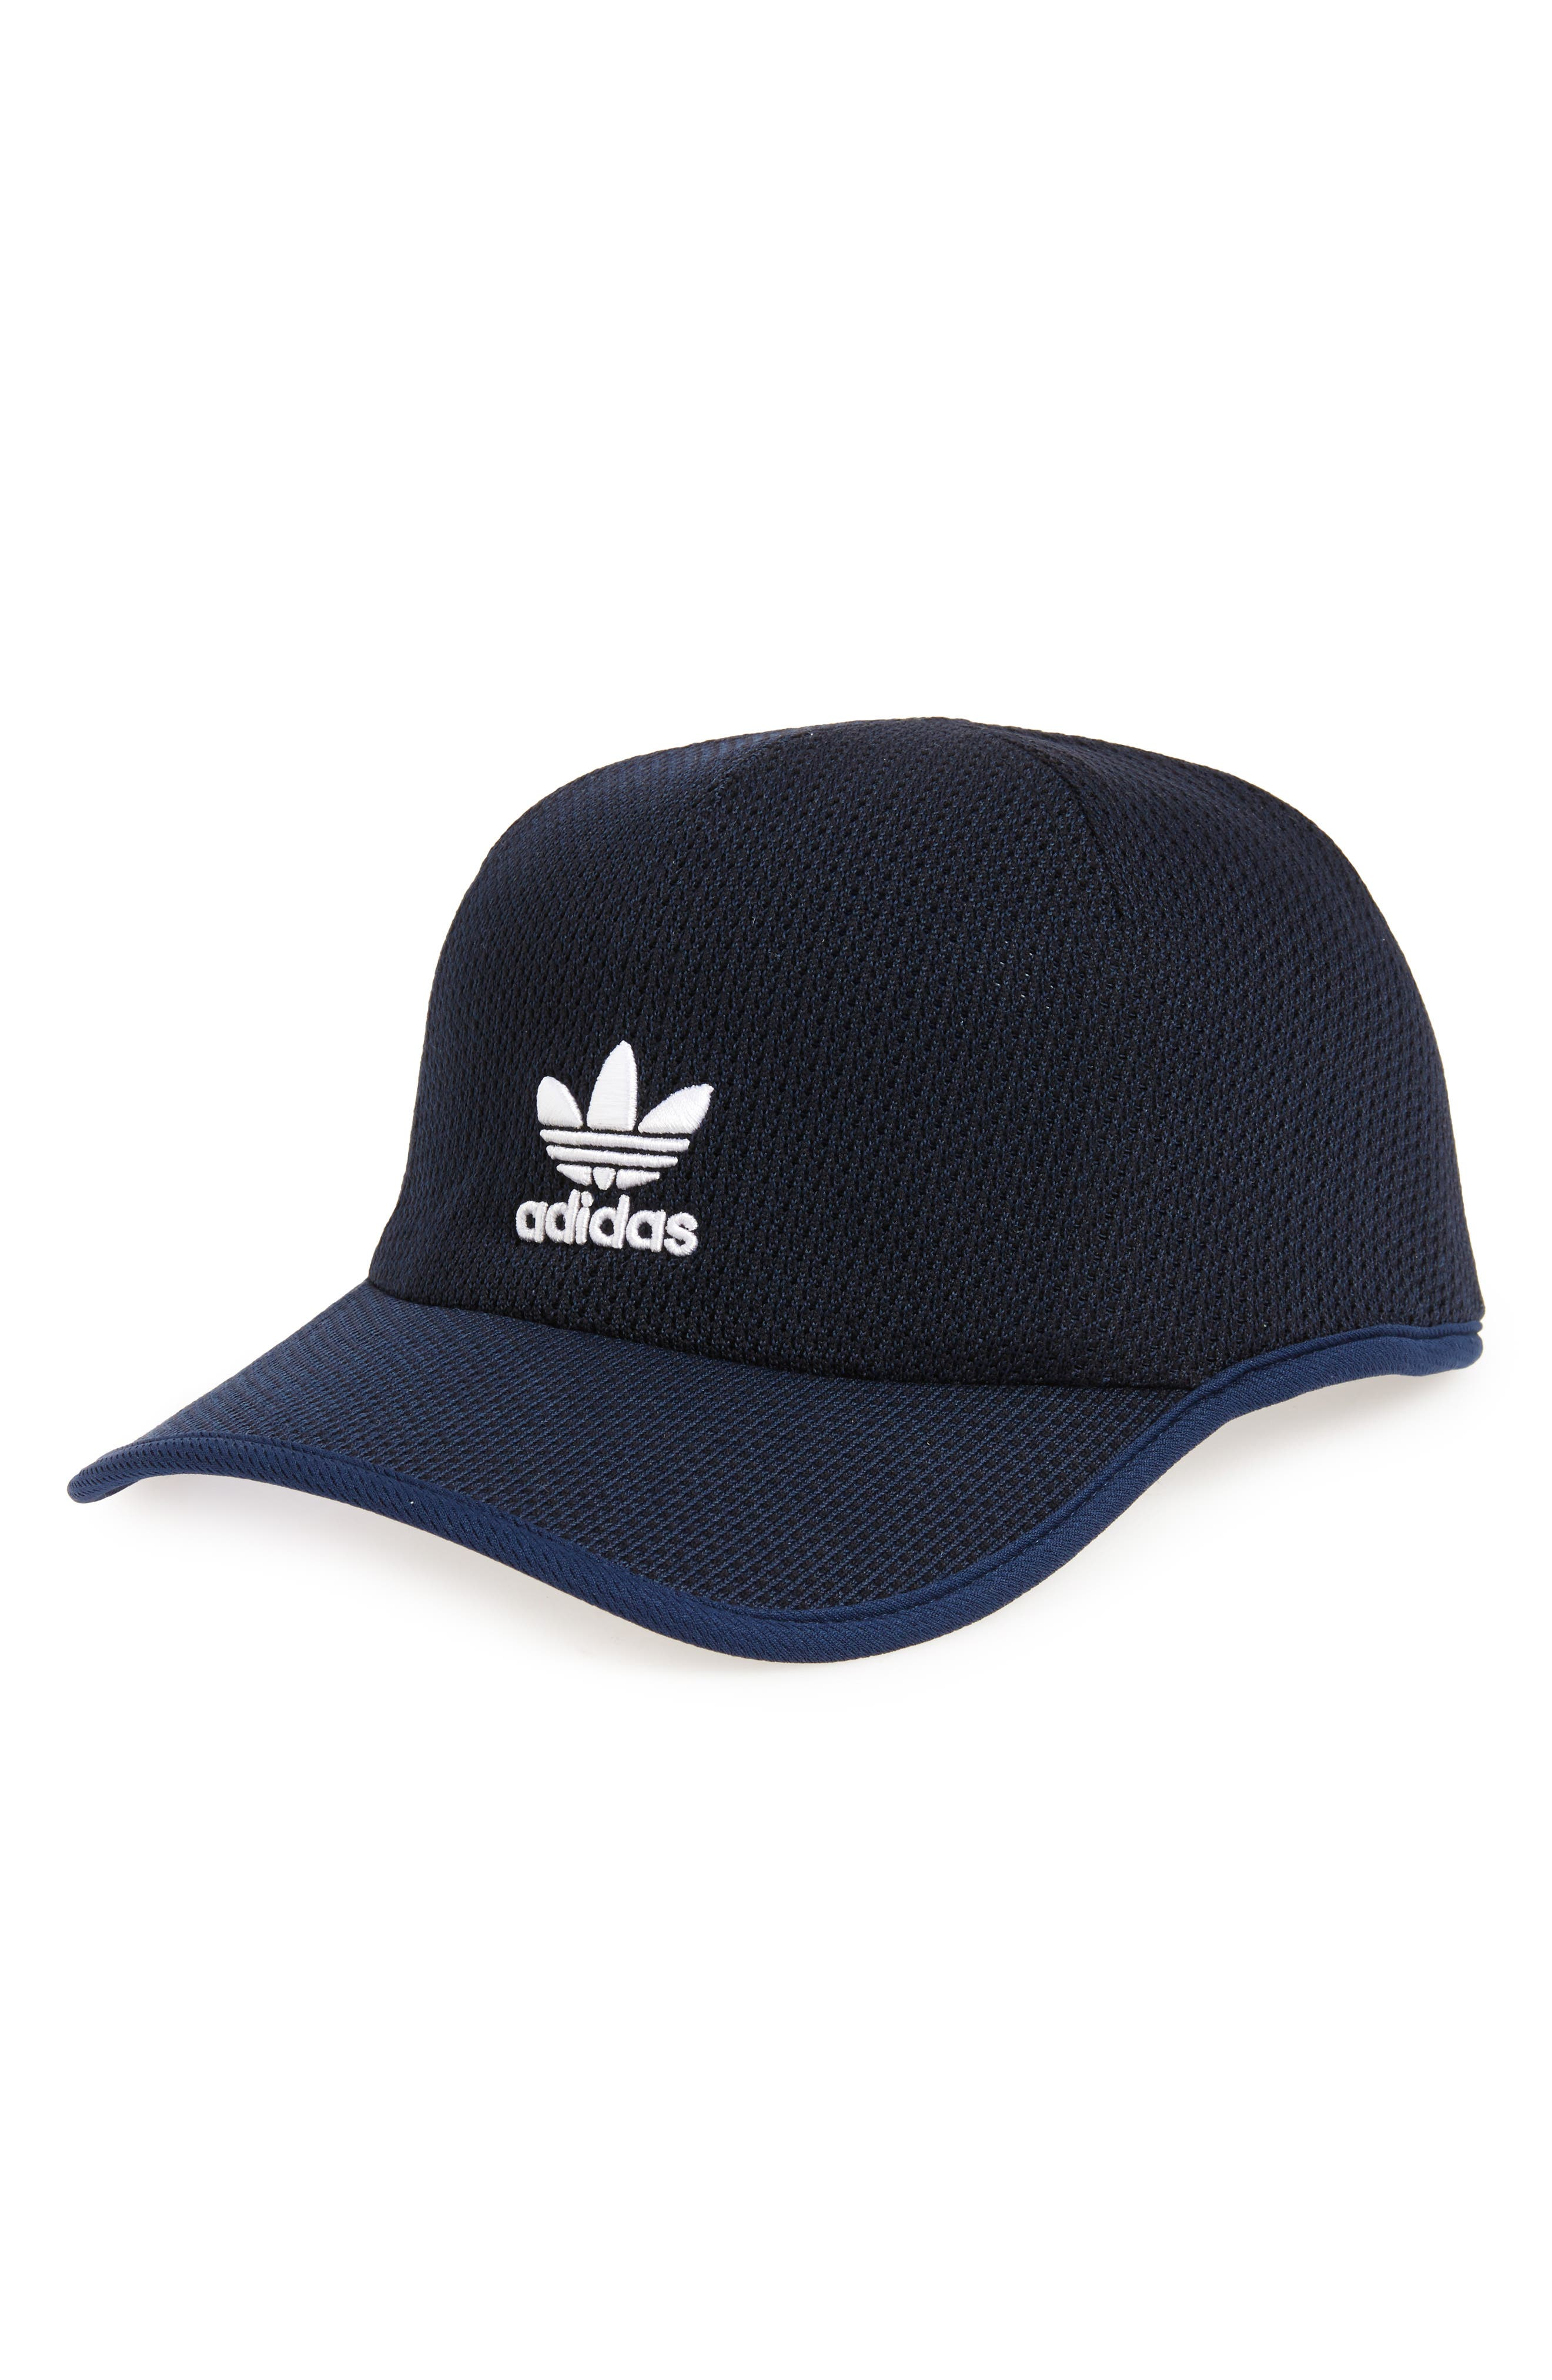 Main Image - adidas Originals Prime Baseball Cap